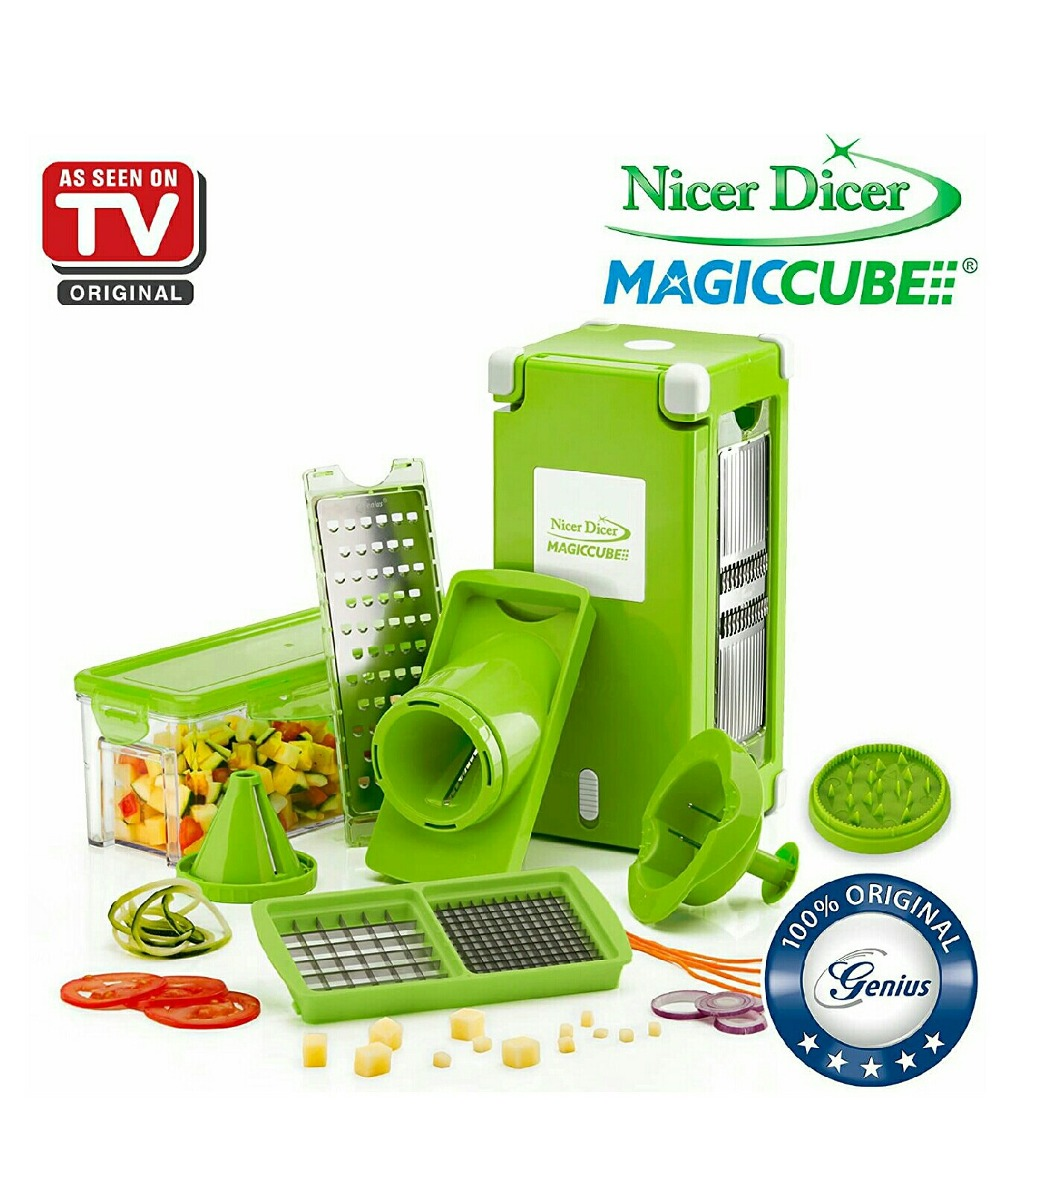 nicer dicer magic cube genius con 12 accesorios envio gratis 1 en mercado libre. Black Bedroom Furniture Sets. Home Design Ideas